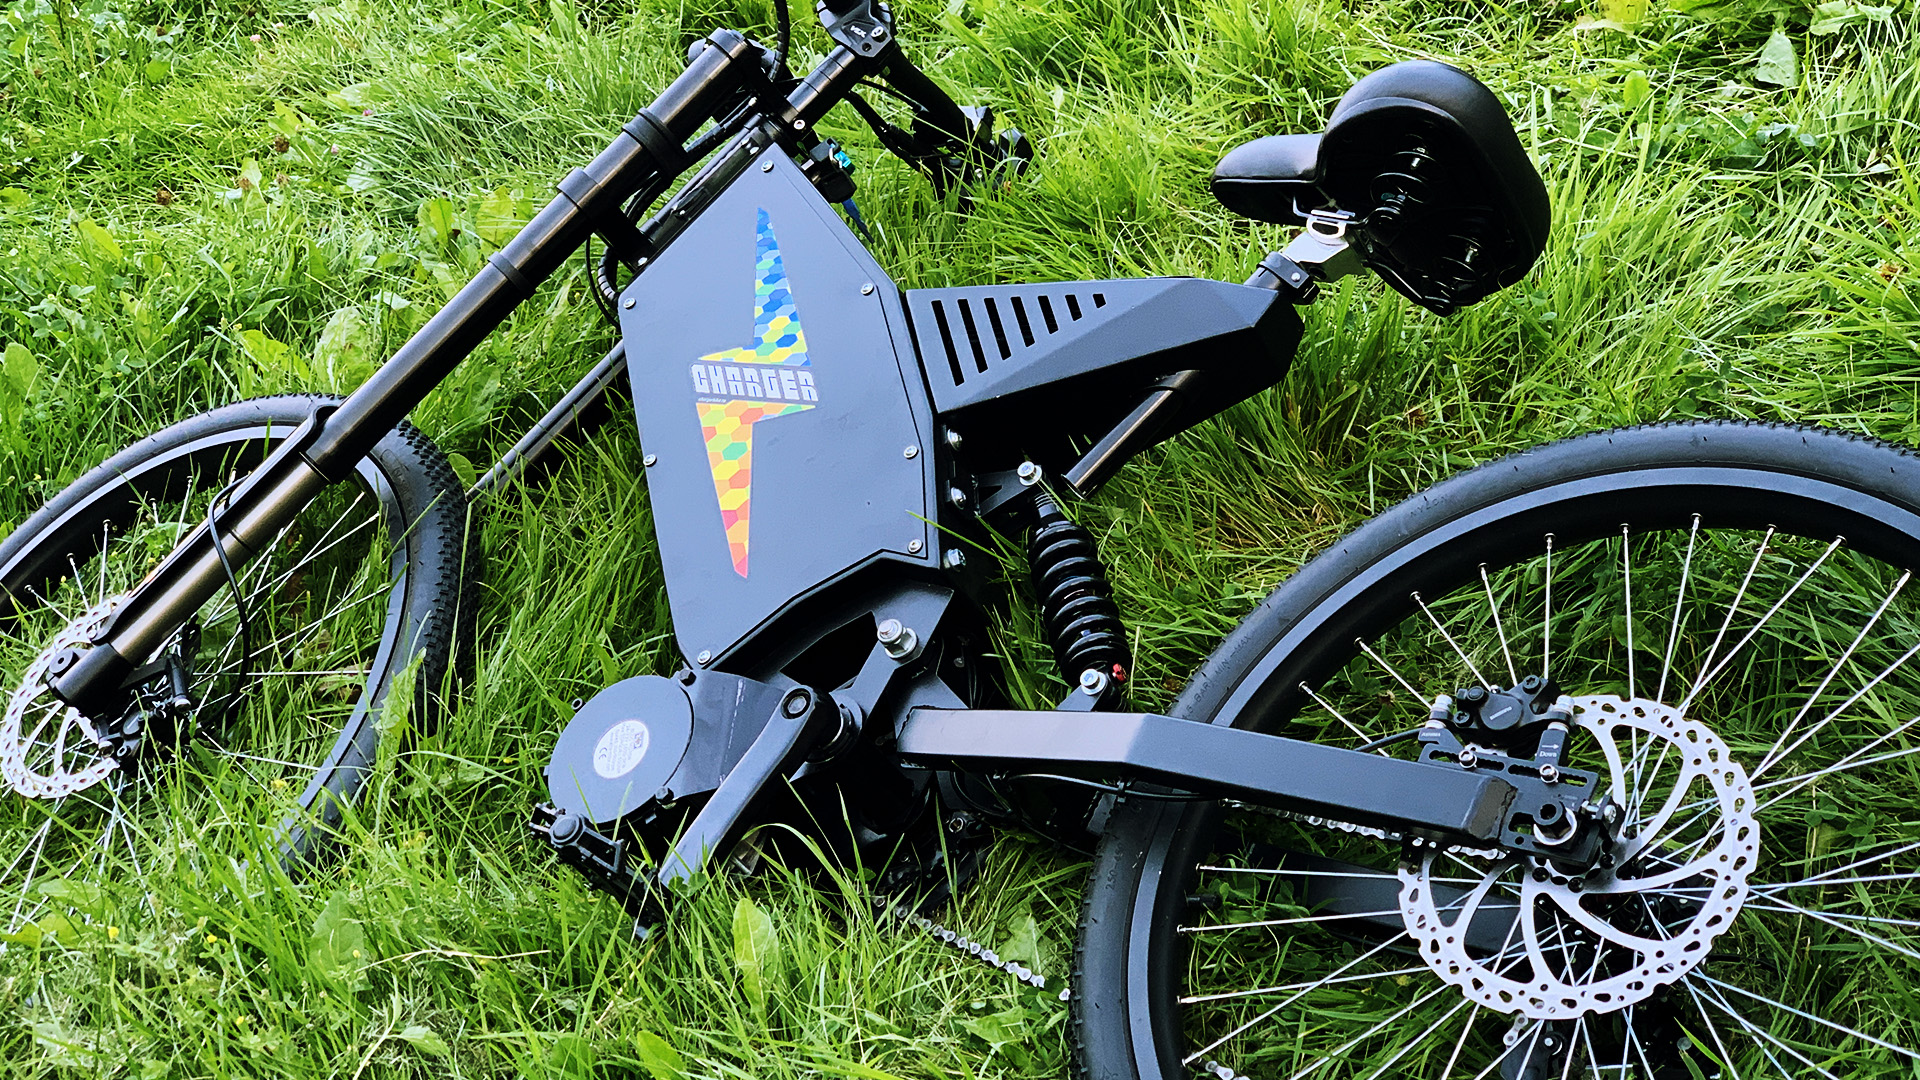 Charger mid drive electric bike